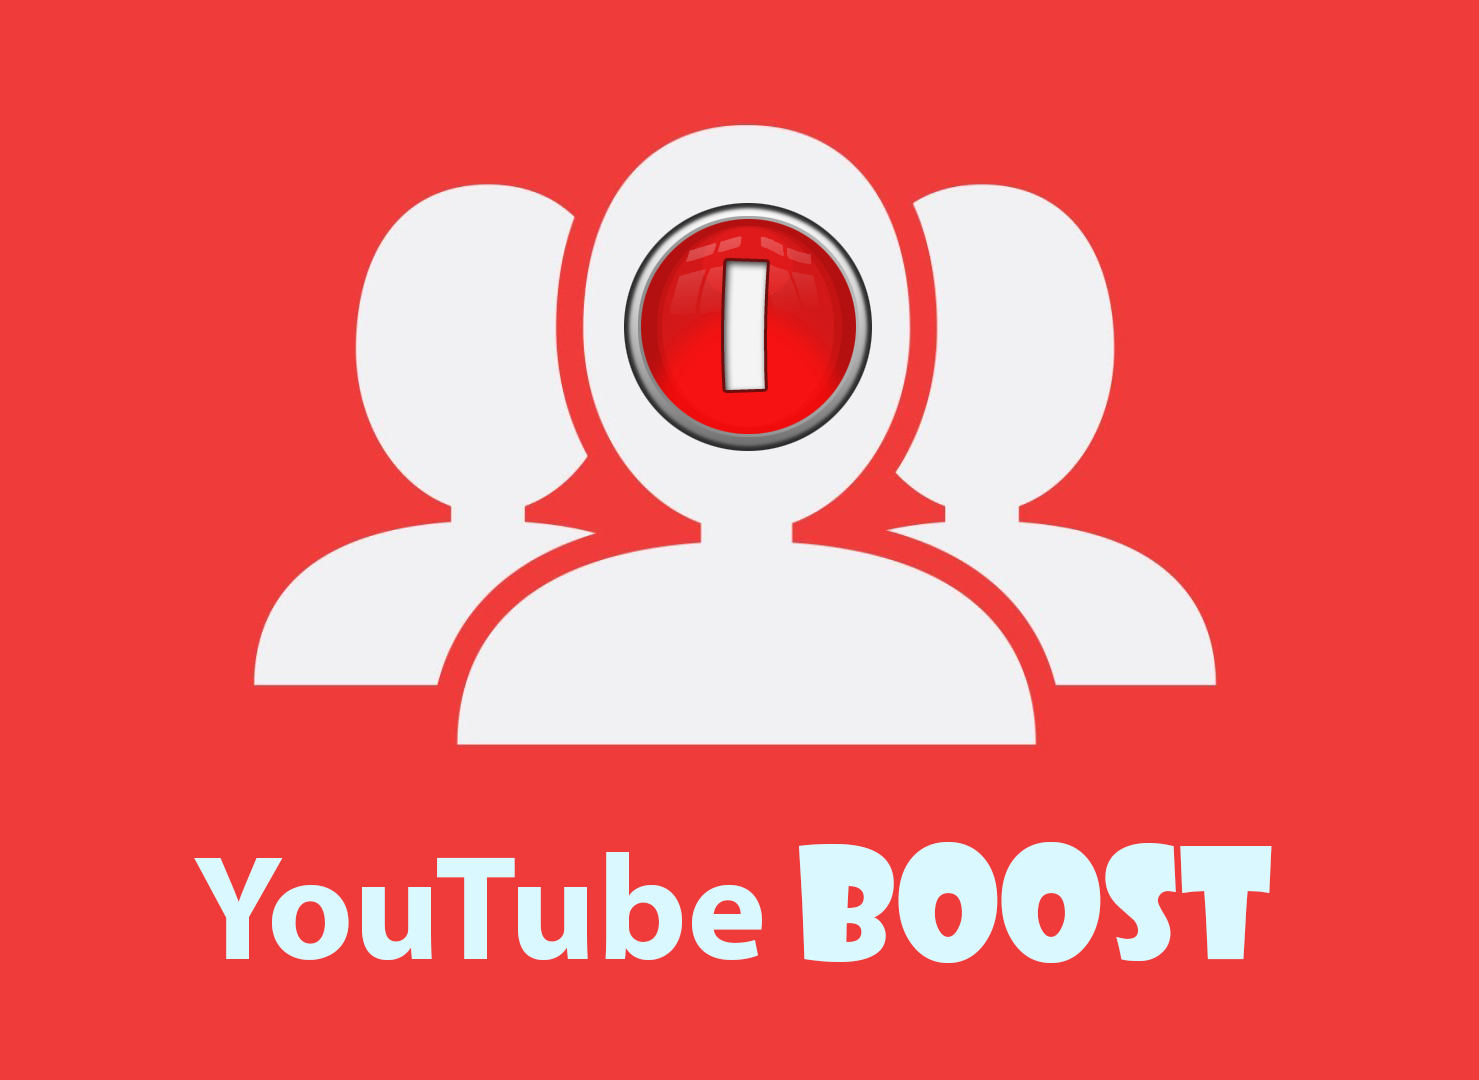 YouTube Boost - 50 likes, 20 favorites & 5 comments